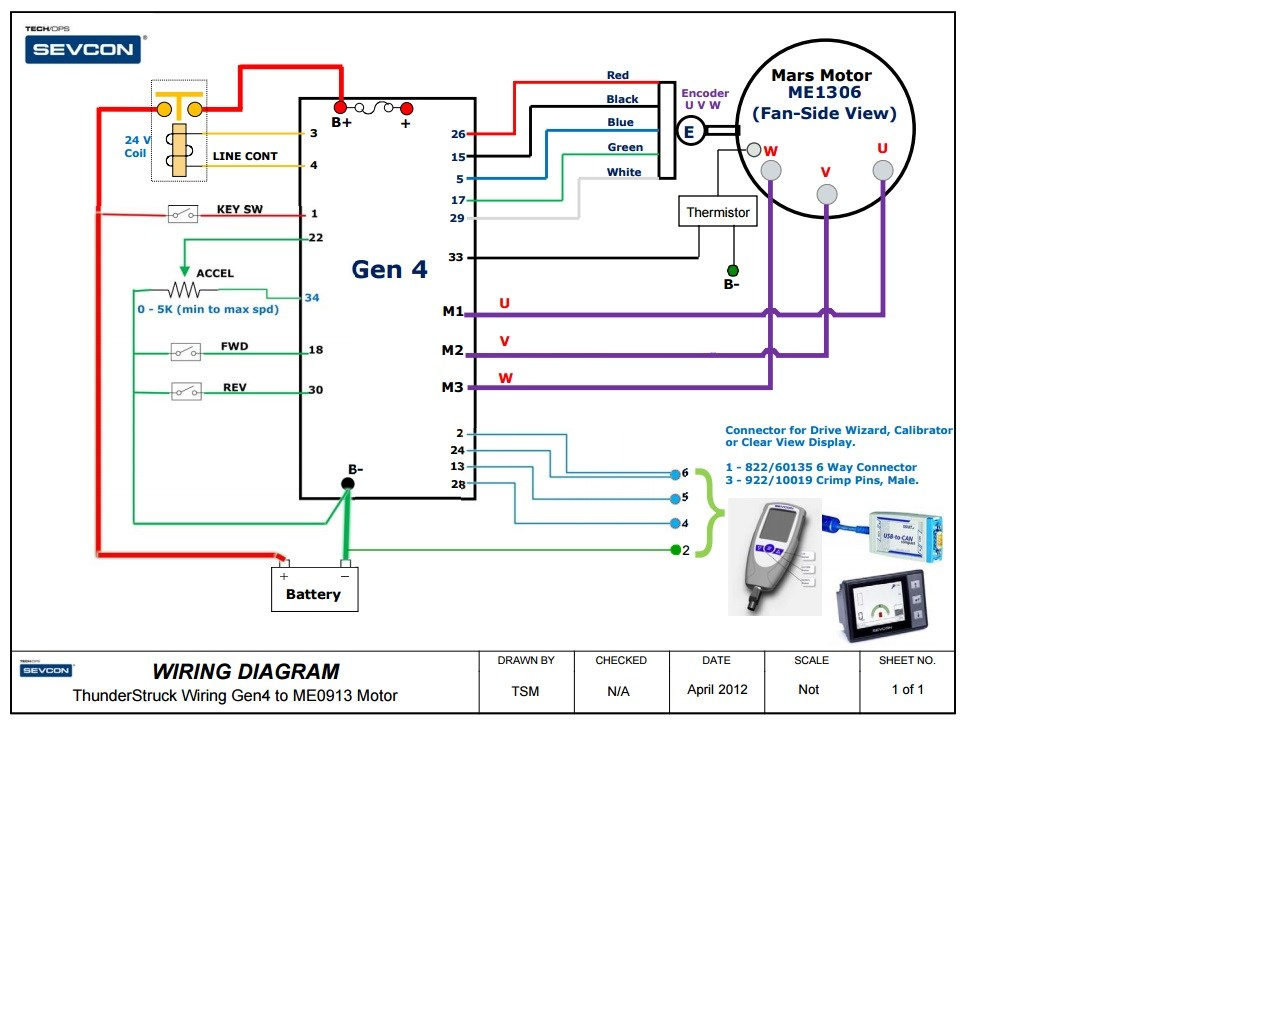 CO_7347] For Curtis Sepex Controller Wiring Diagram Download DiagramSiry Xorcede Mohammedshrine Librar Wiring 101